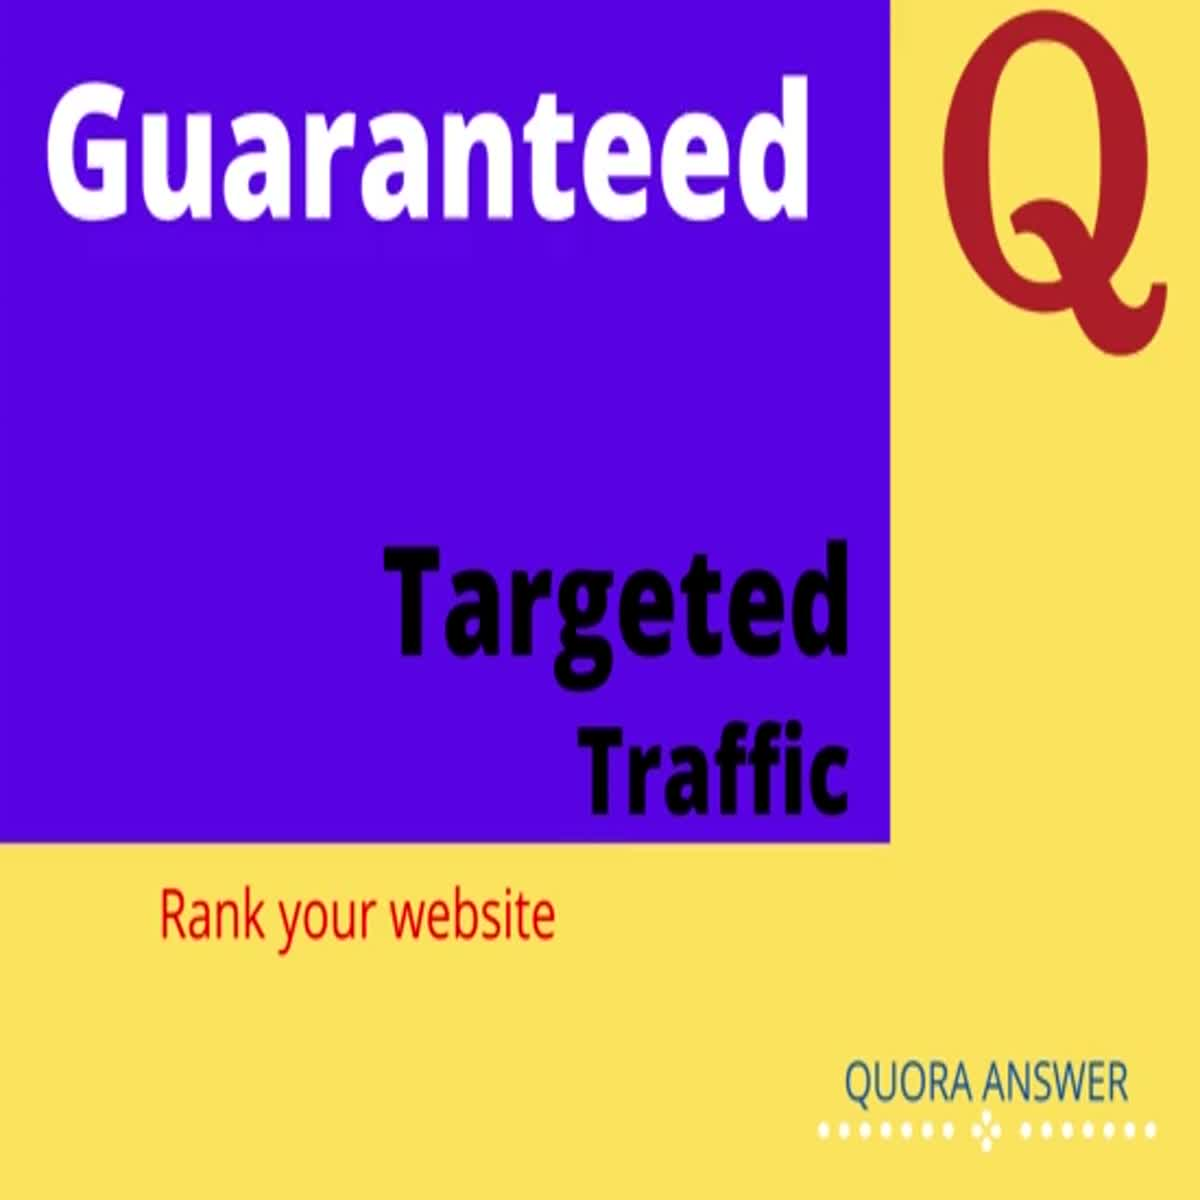 Guaranteed targeted traffic with 10 Quora Answer with backlink